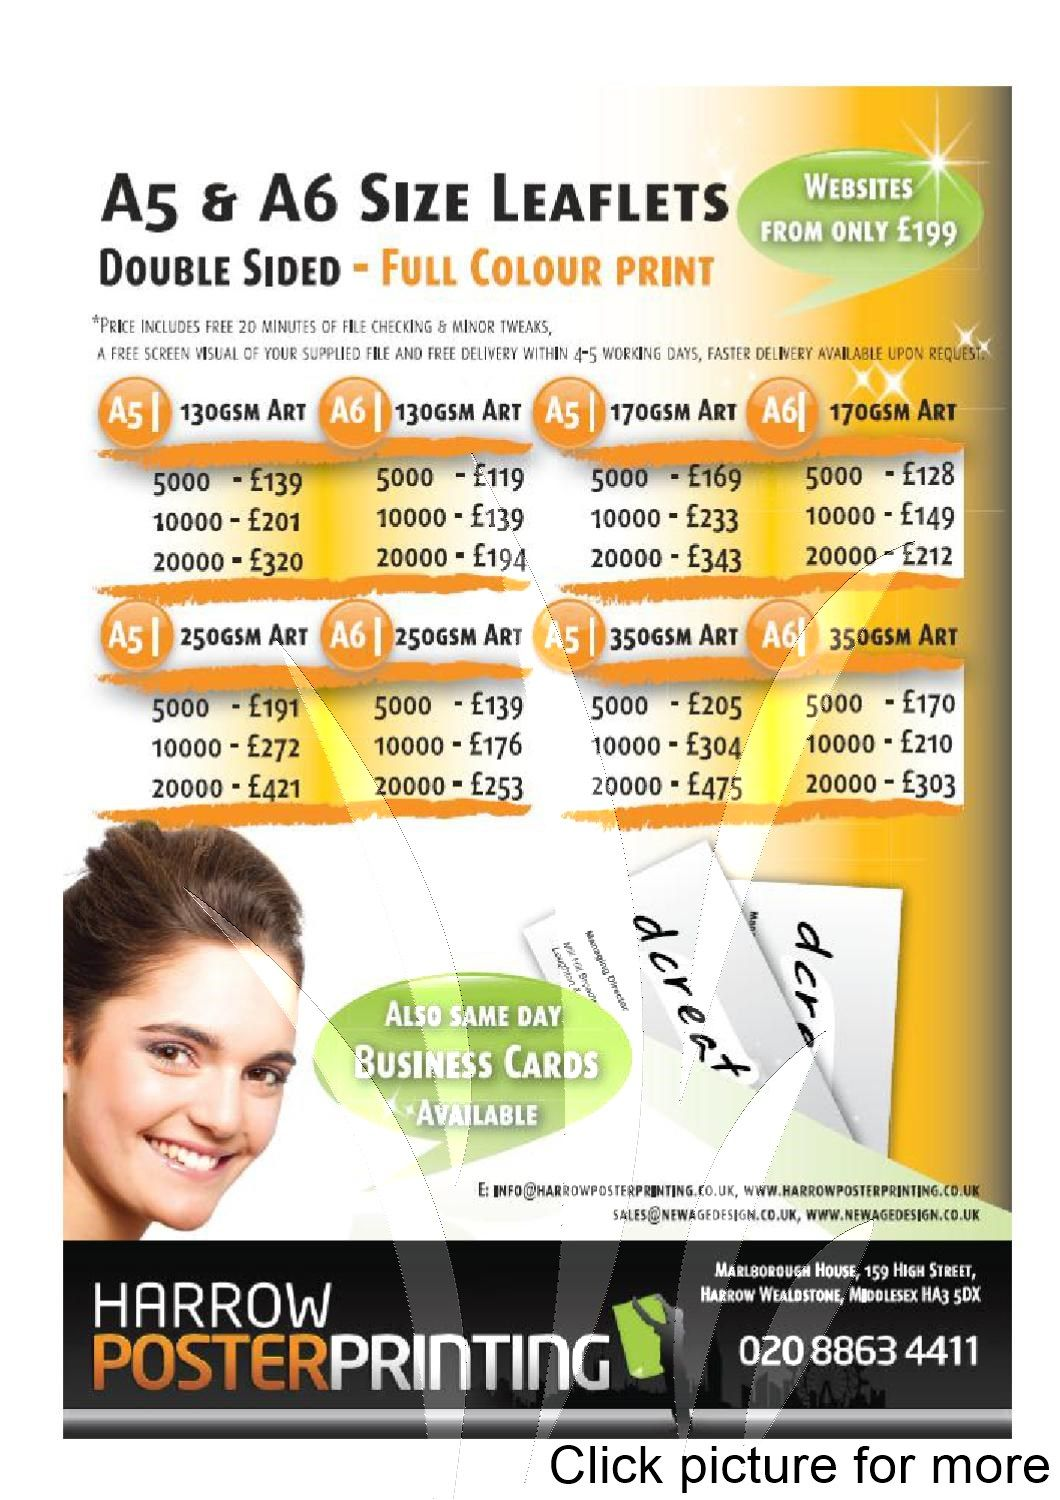 Business Card And Flyer Printing Businessflyer Flyerprinting Flyer And Business Card Printi Flyer Printing Business Cards And Flyers Printing Business Cards